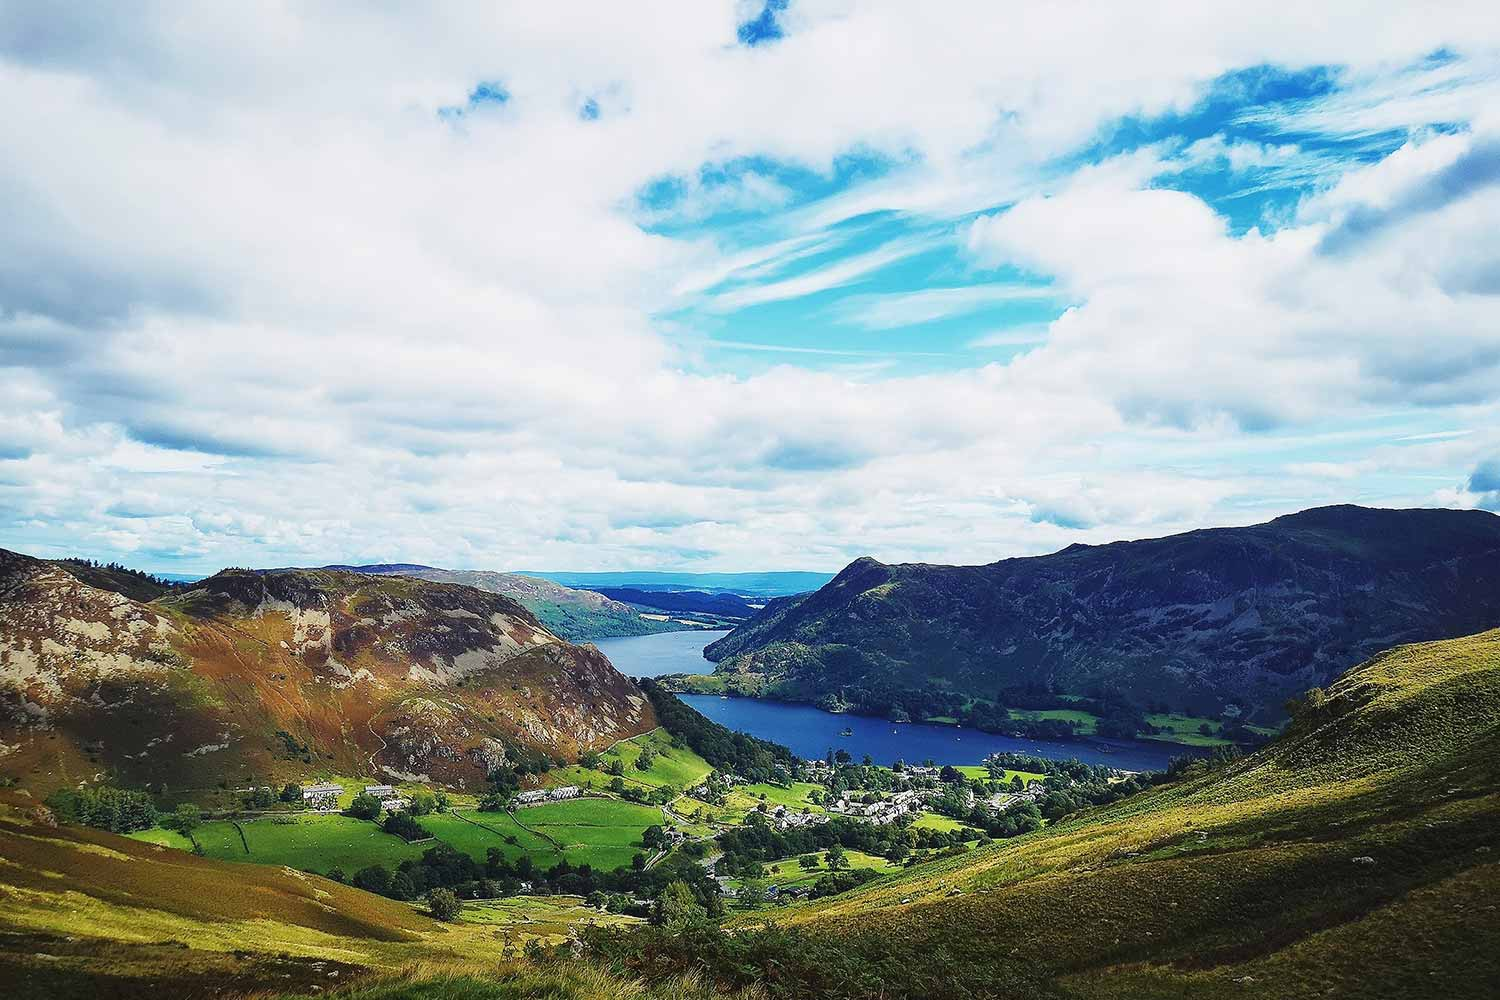 Staycation Series: The Lake District